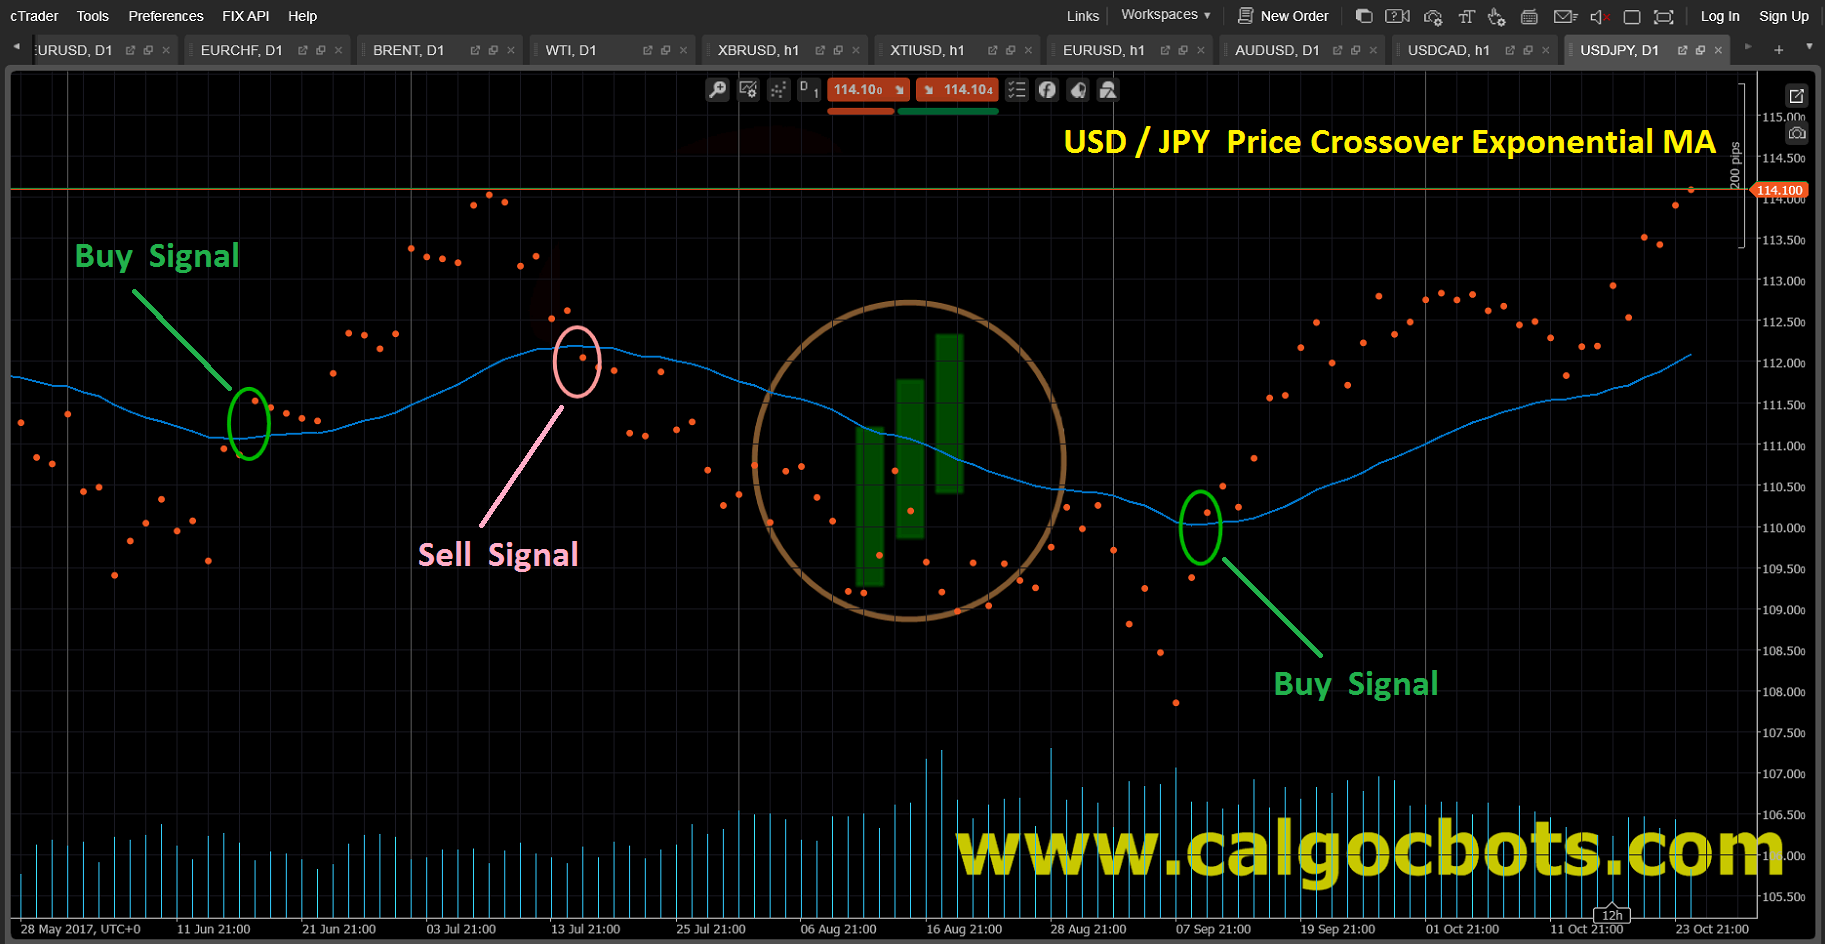 Price Crossover Exponential MA Dots_Chart_USD_JPY_cAlgo_cBots_cTrader_01